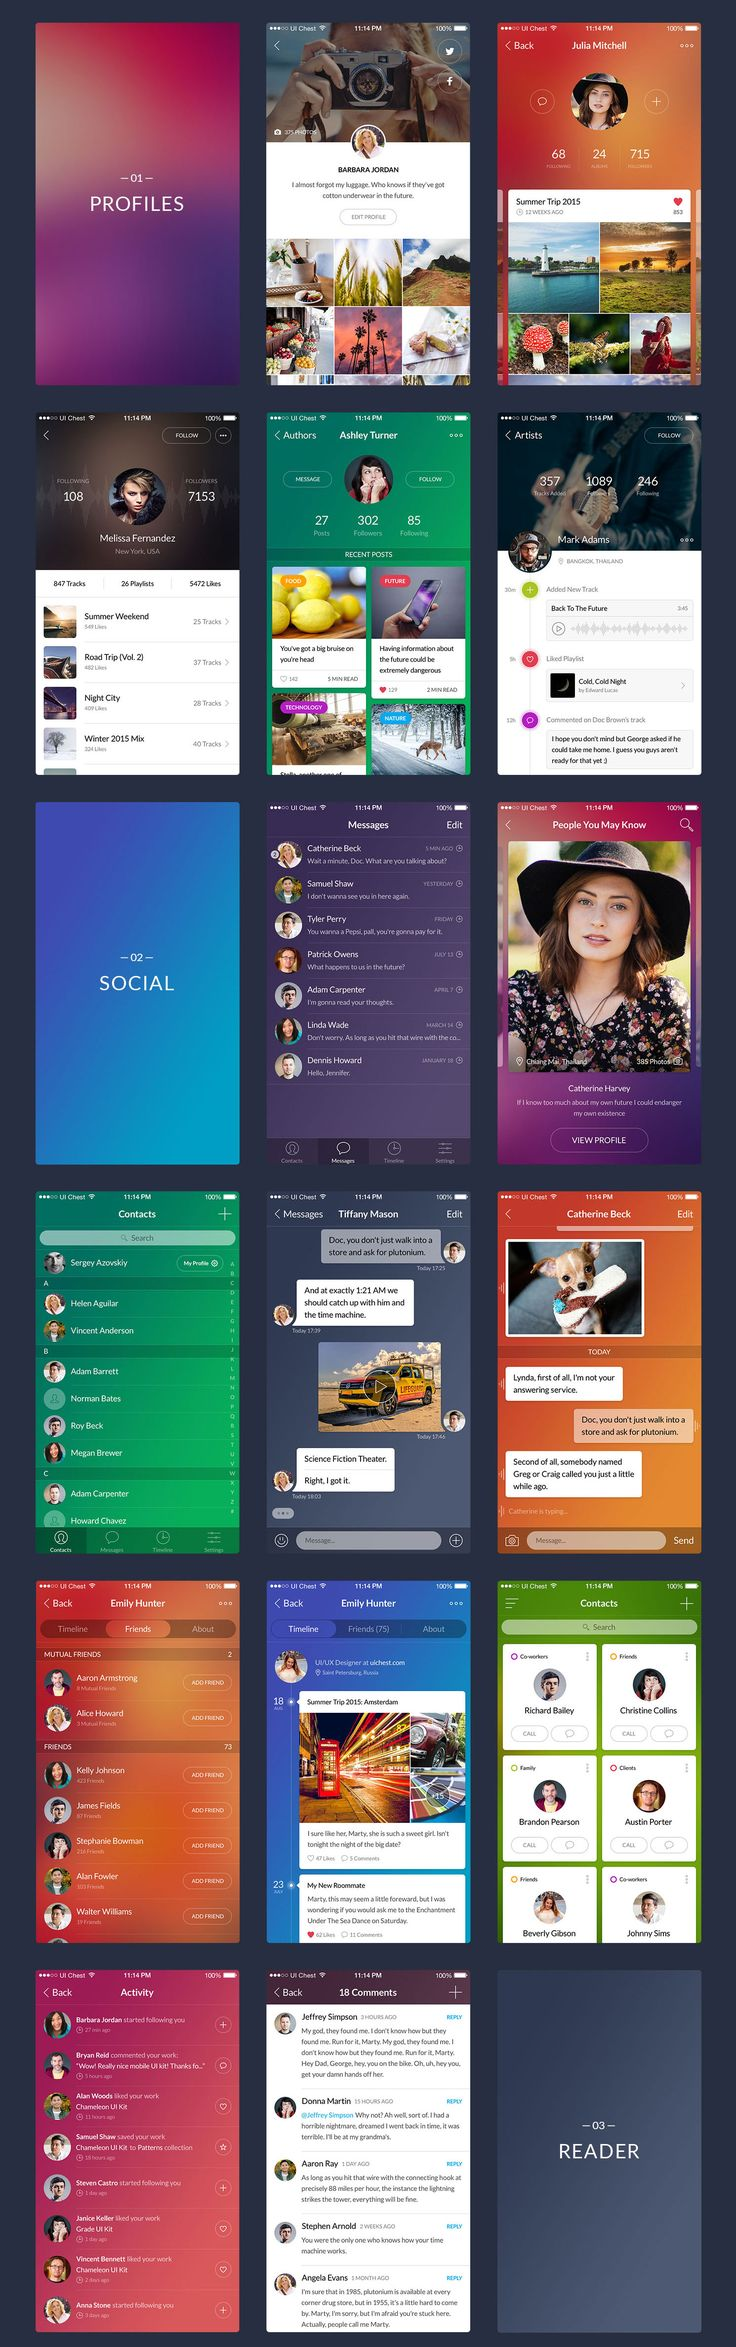 Chameleon is a premium mobile UI kit for Adobe Photoshop. With 100 beautiful…